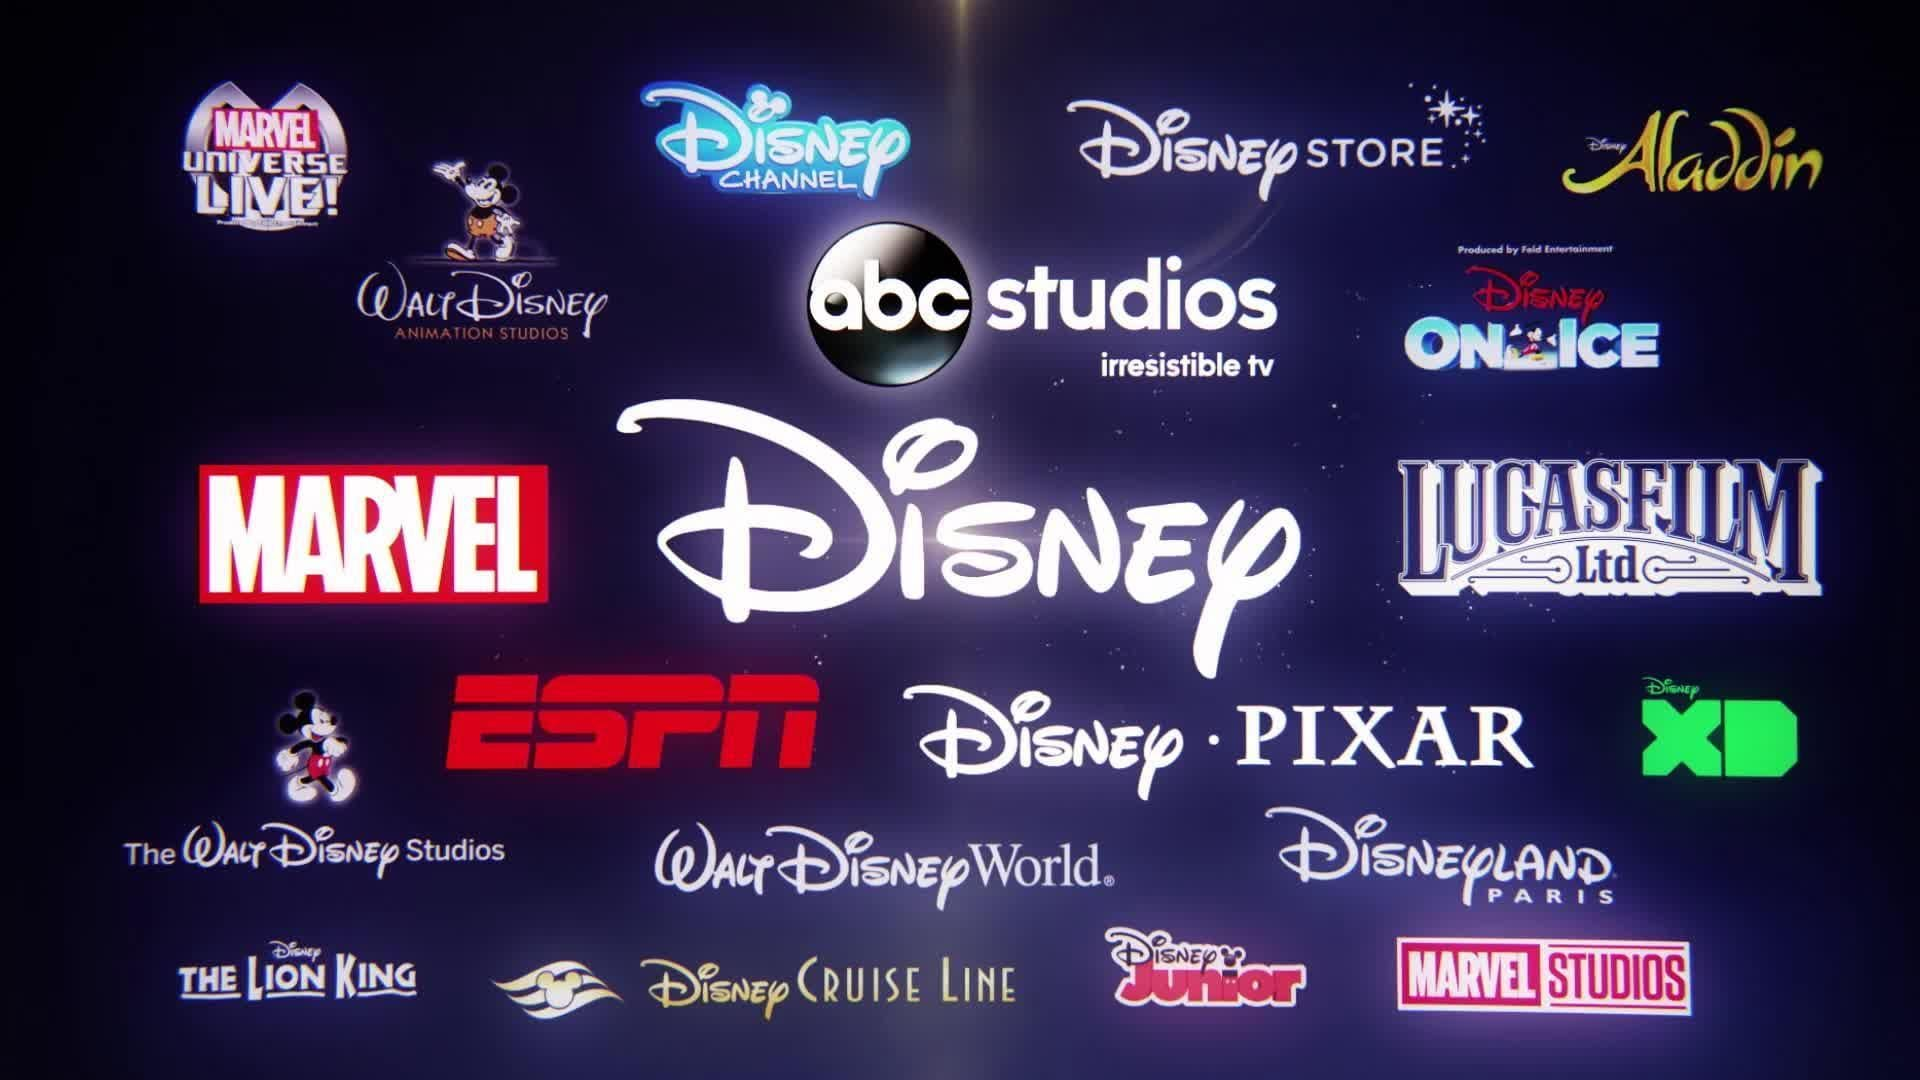 About Us - The Walt Disney Family of Companies Video (DK)